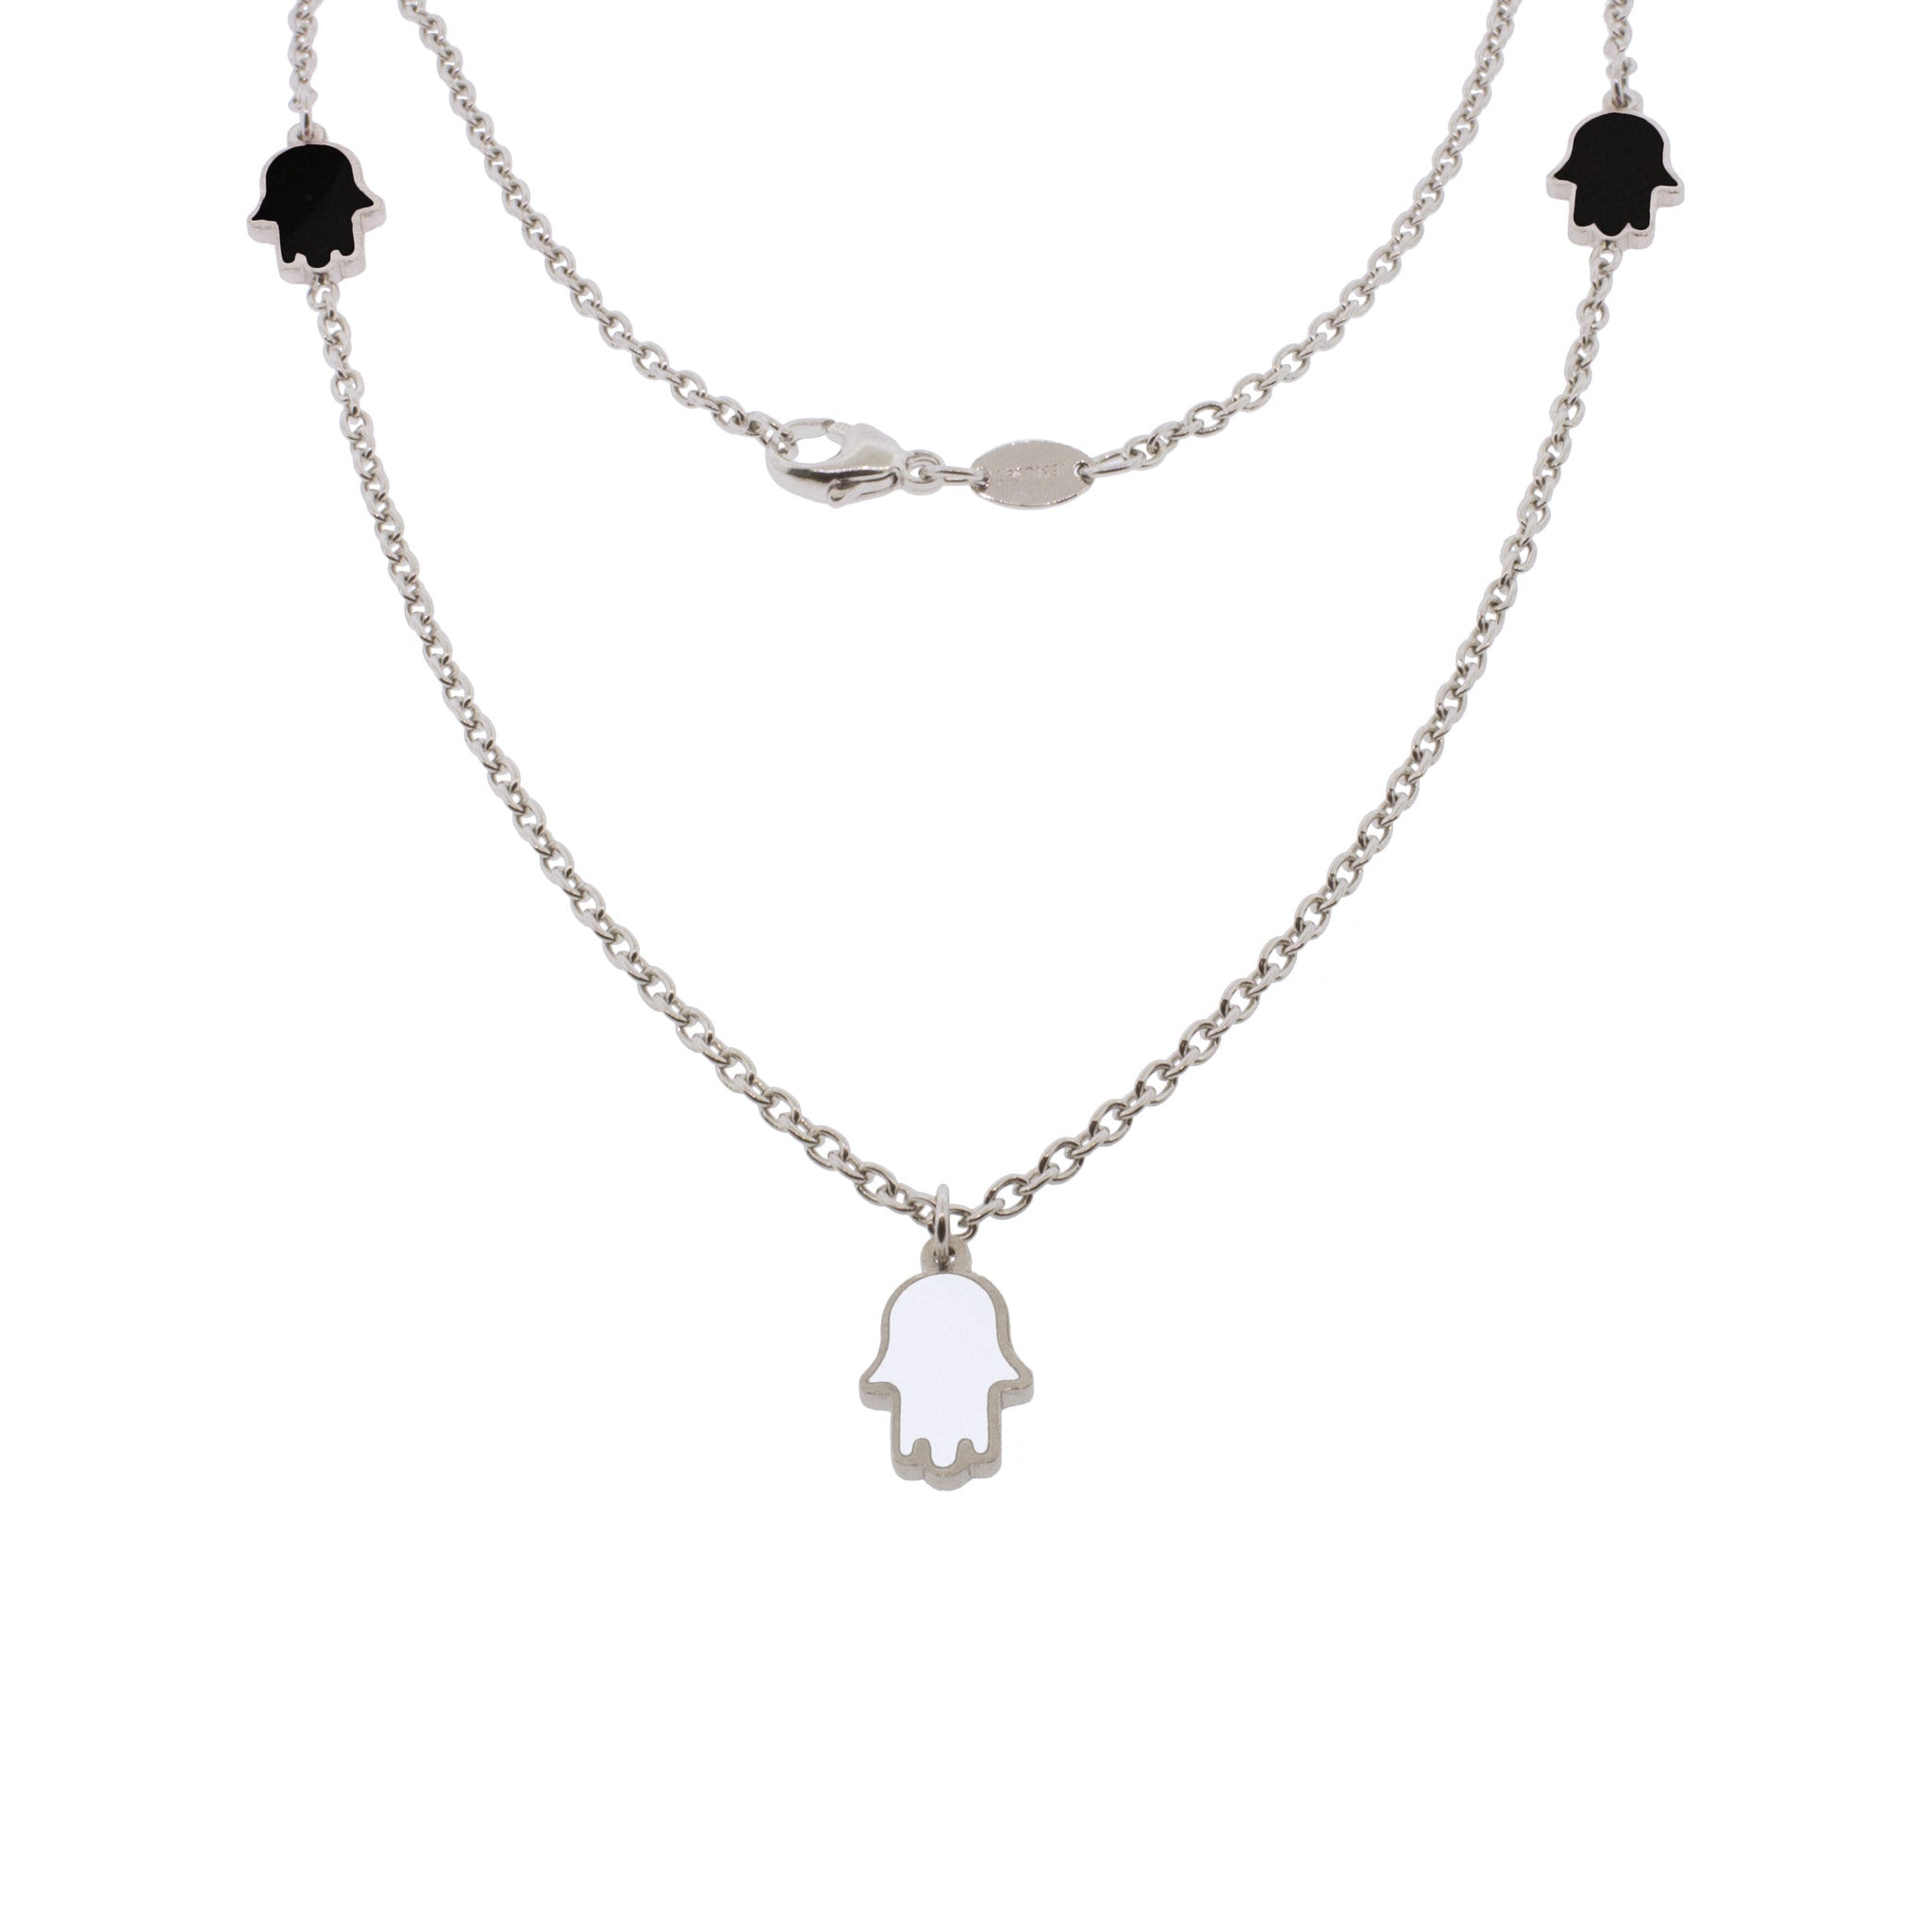 16-inch Touch of Luck Sterling Silver Necklace - Black